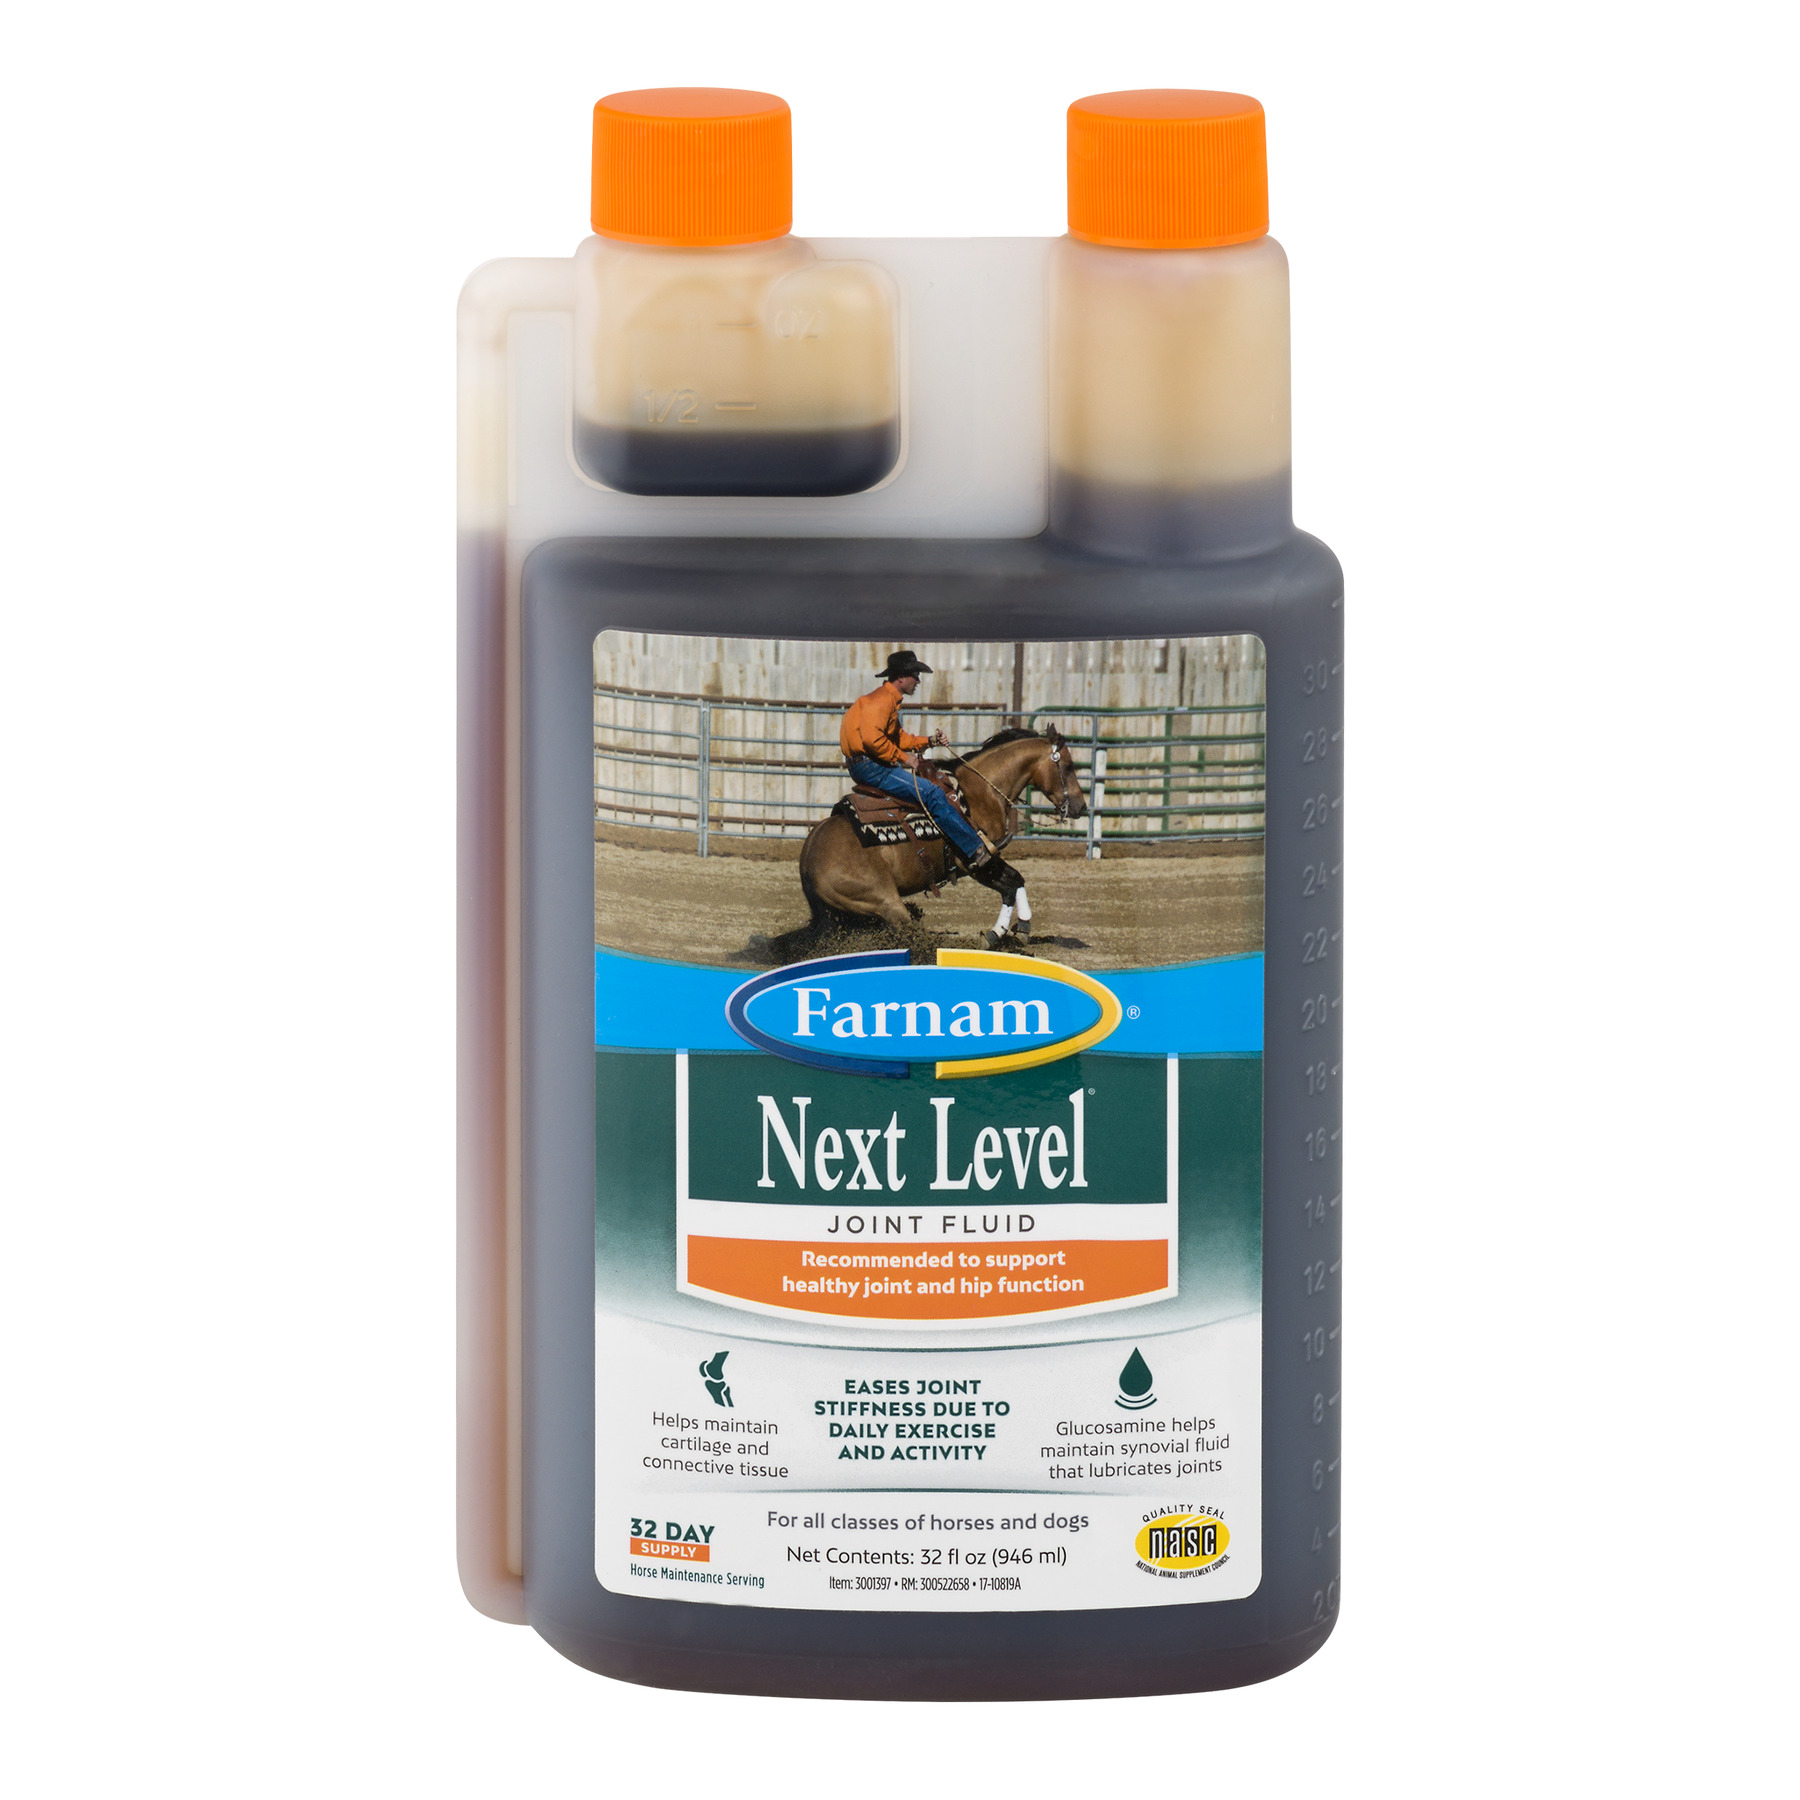 Farnam Next Level Joint Fluid For Horses And Dogs, 32.0 FL OZ